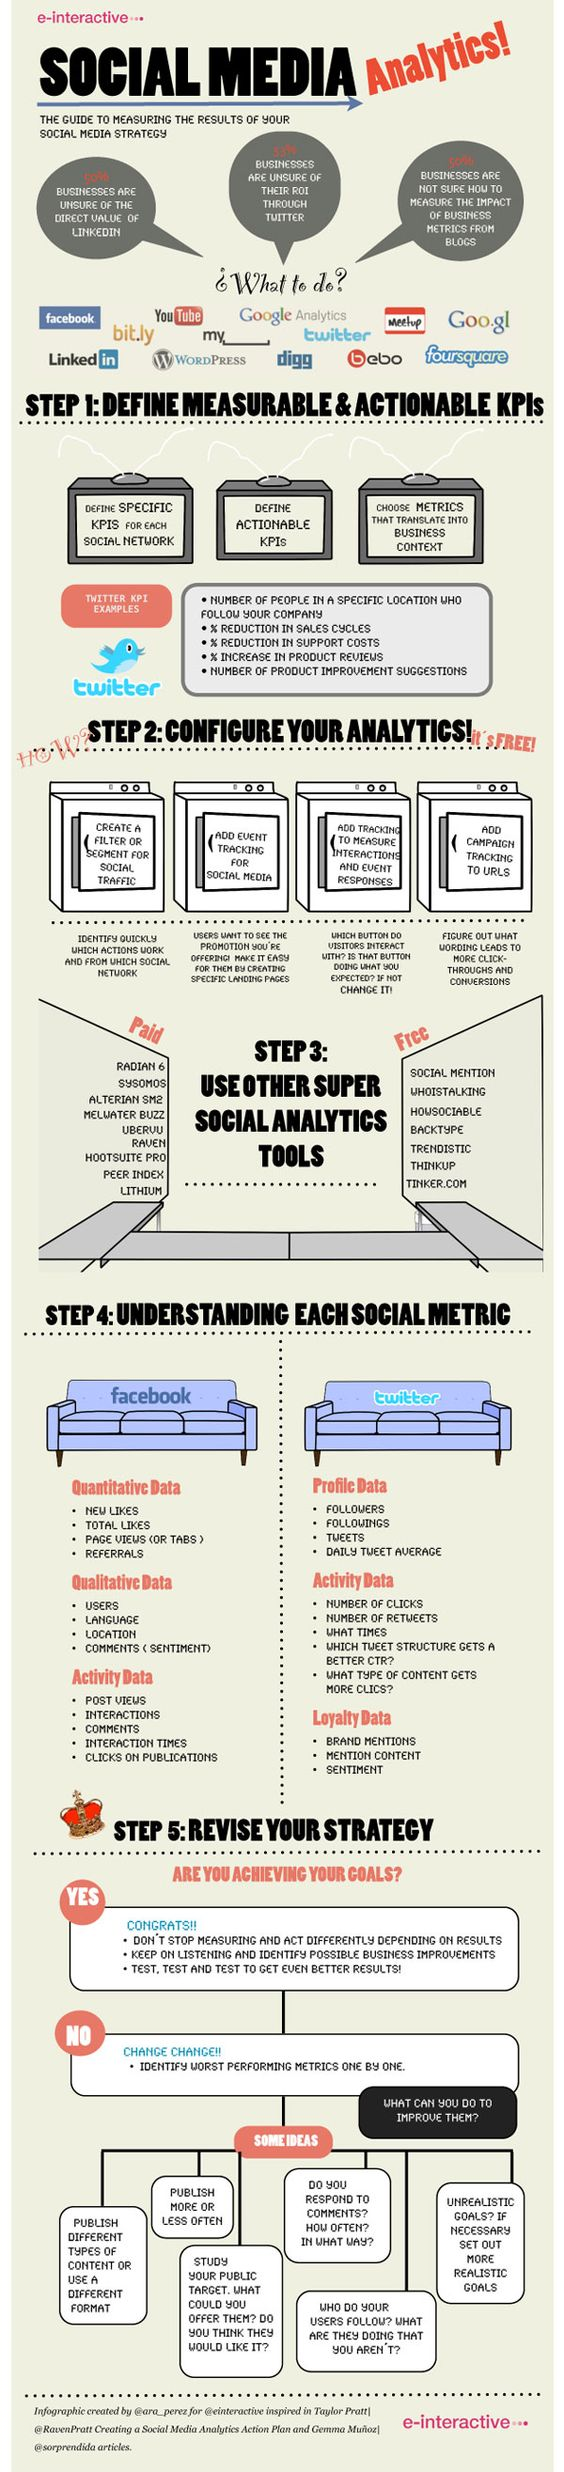 Social Media Analytics. How to measure the effectiveness of your social media strategy.